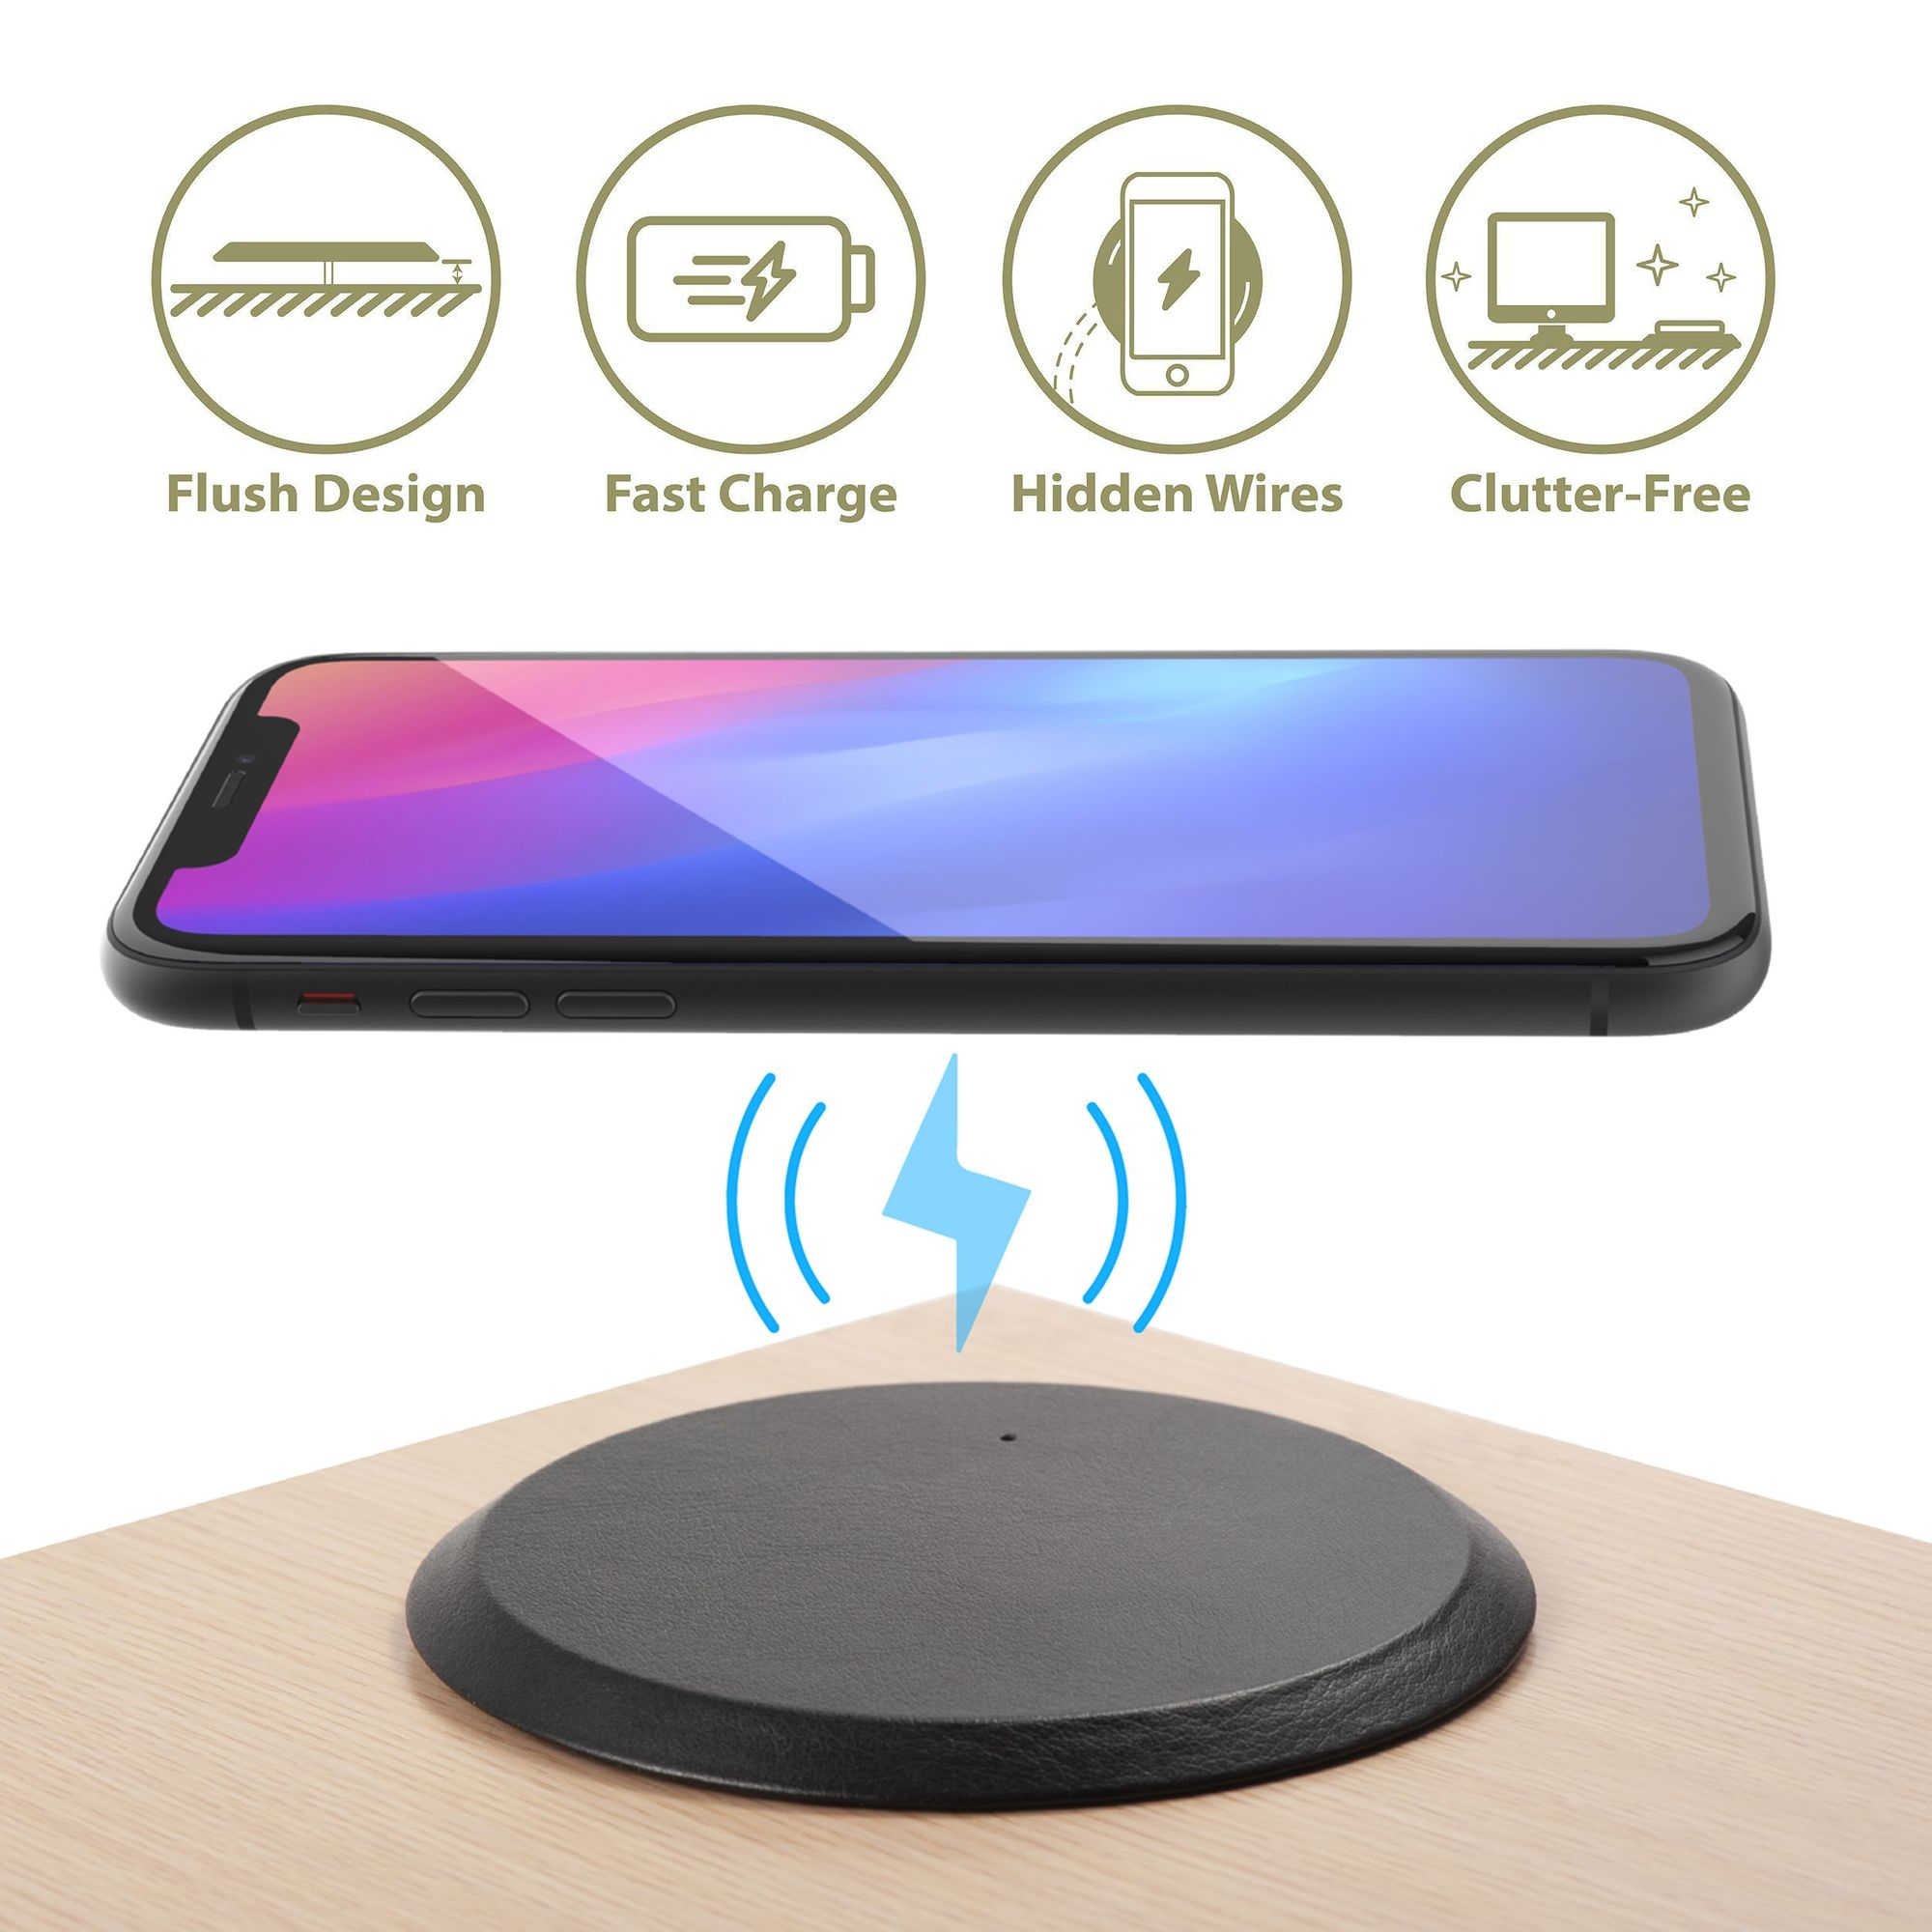 ZENS Wireless Charging Pad Single Qi Charger Pad with 15 Watt Power Output Black Supports Apple iPhone and Samsung Galaxy Fast Charge -Includes AC//DC Adapter